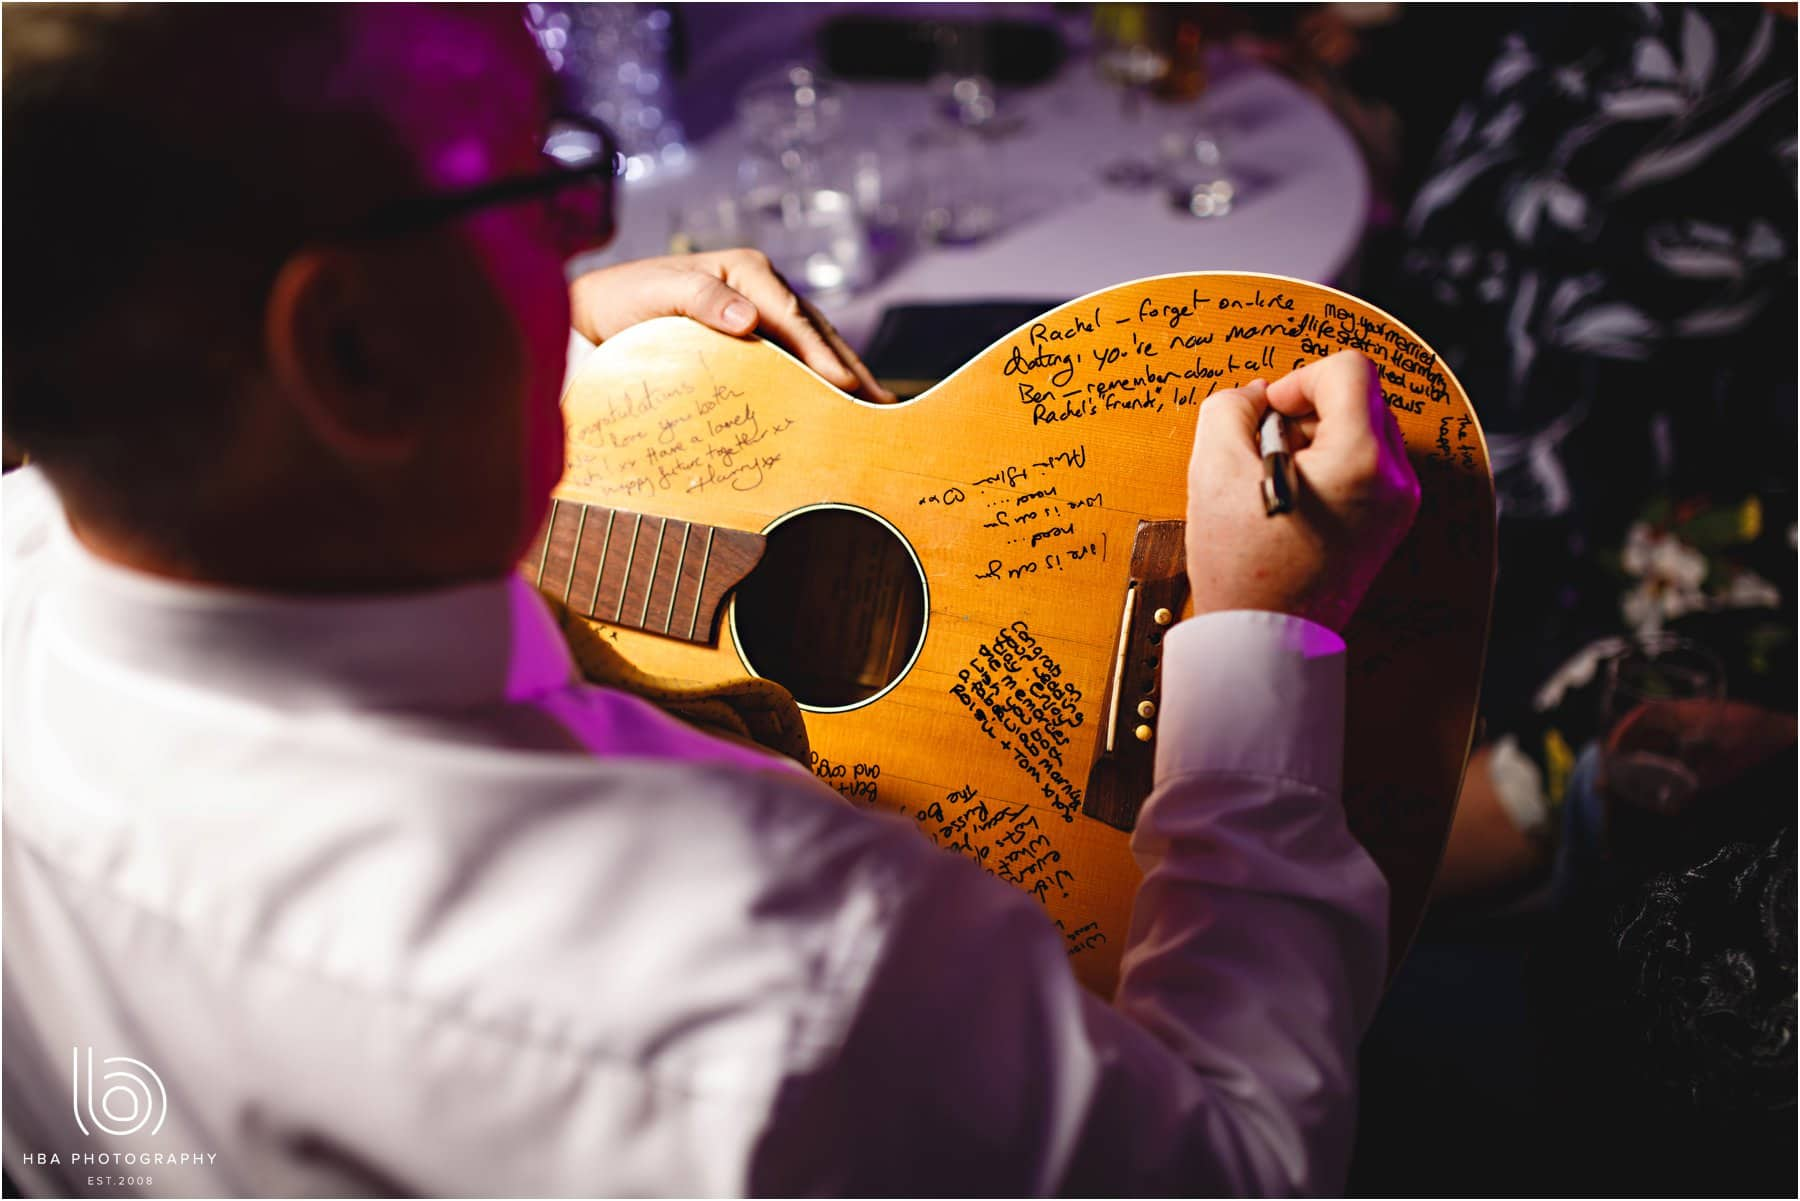 everyone signing the guest book guitar